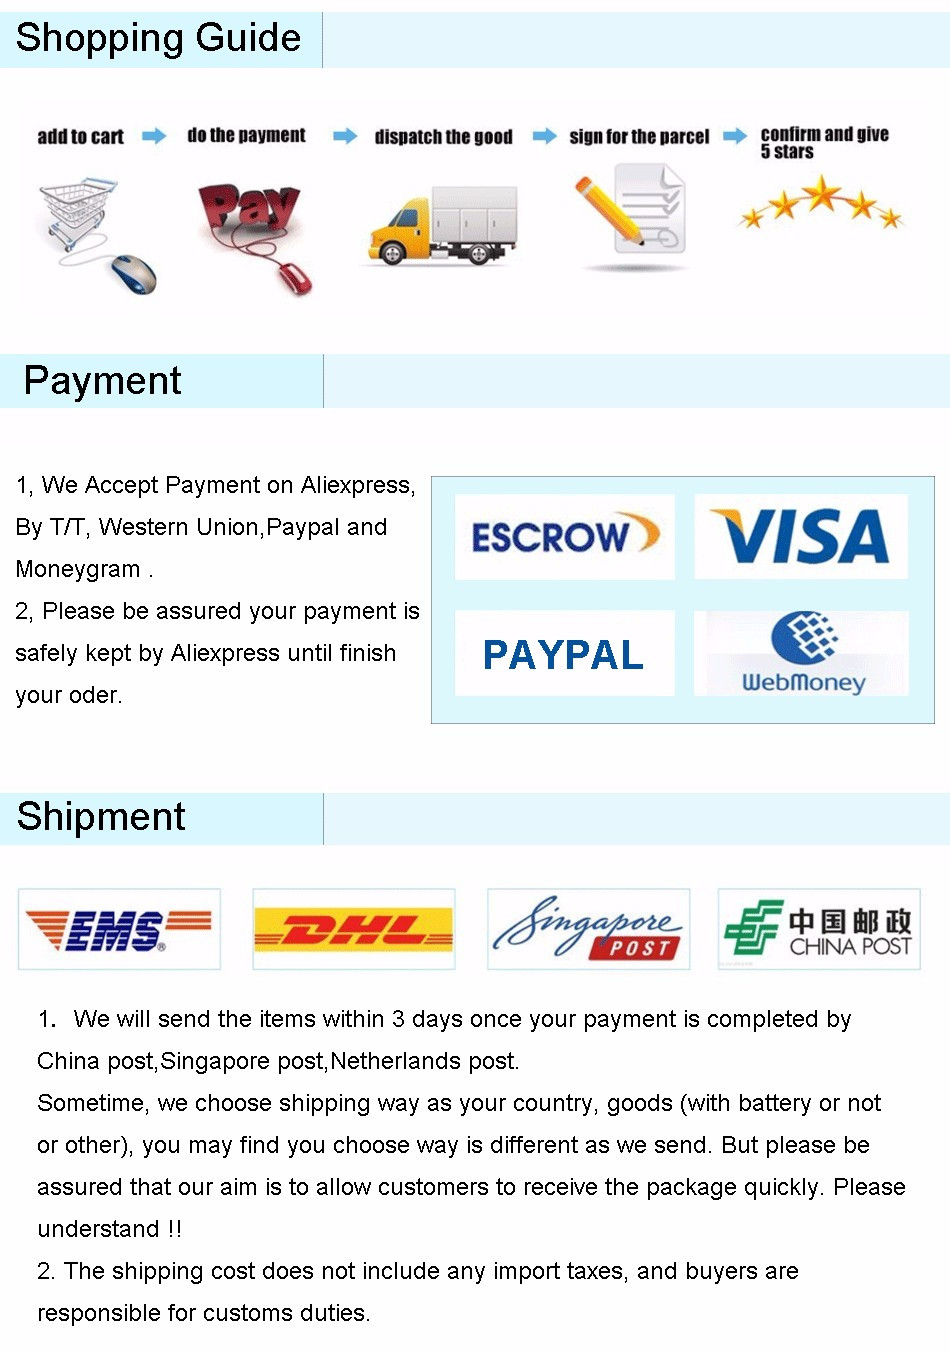 Replacement Sweeper Robot Motherboard for XIAOMI Mi Roborock Vacuum Cleaner Parts for Sweeping Robot 1 Generation Accessories